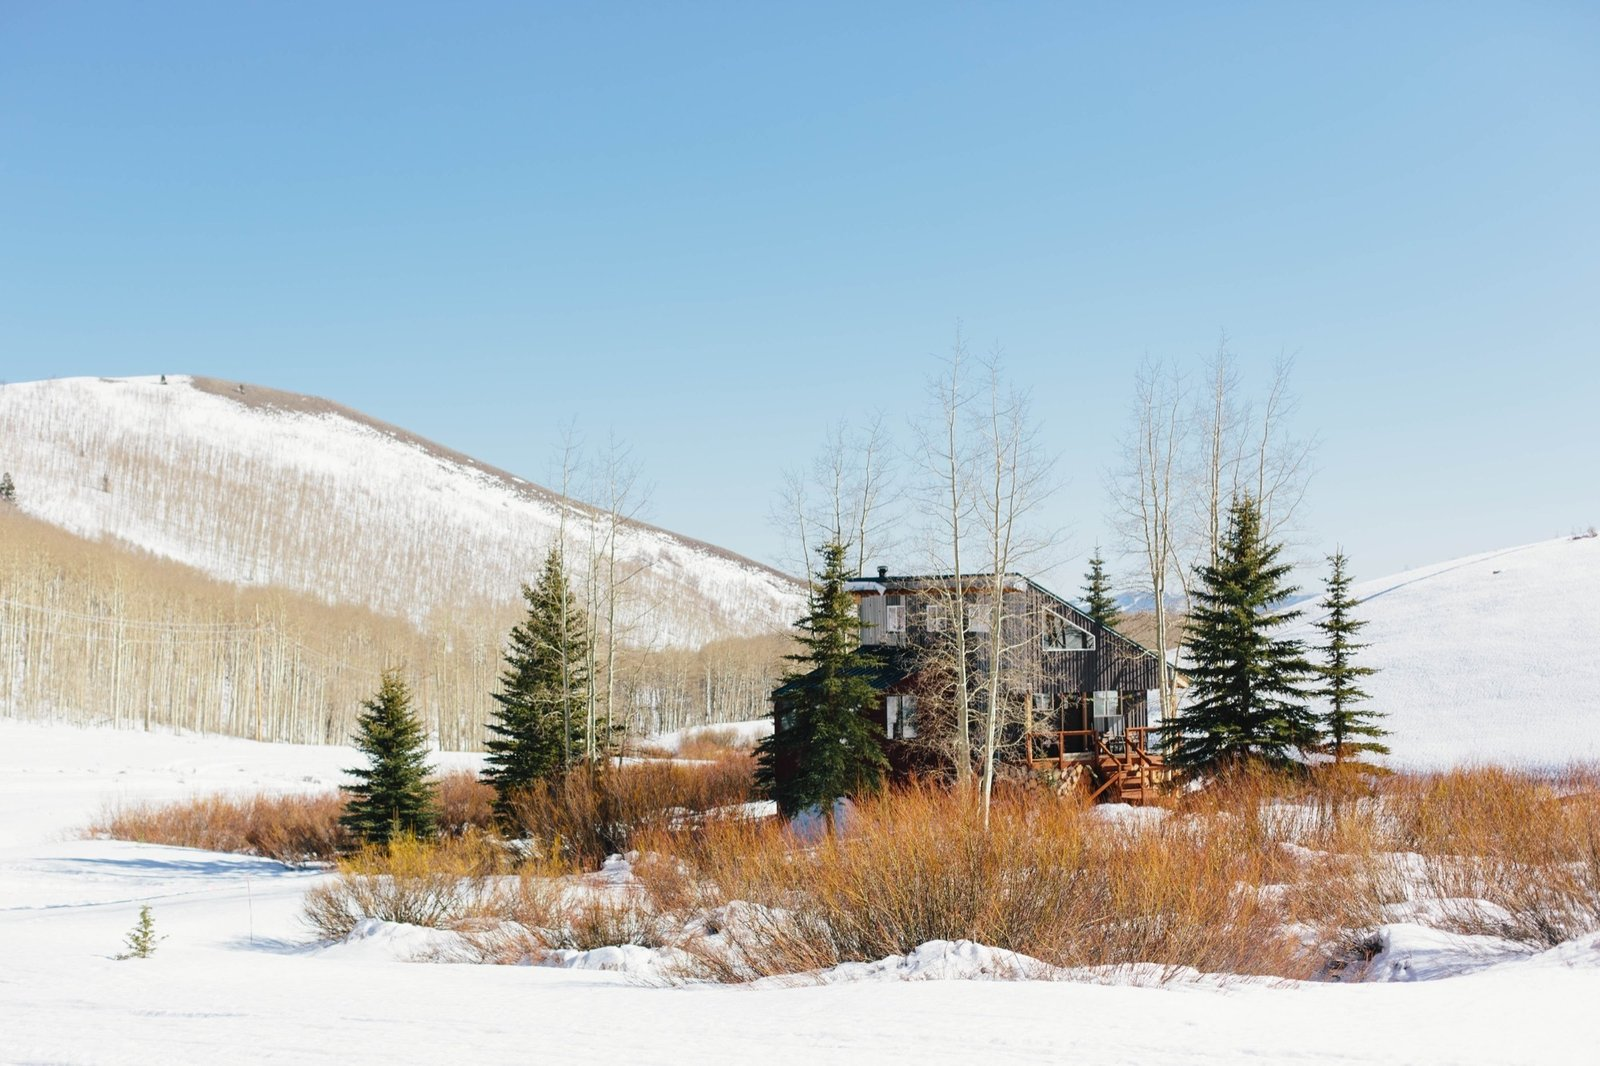 After a two-year search, the couple finally found the perfect place for their permanent base camp amid backcountry terrain on the Wasatch Back in the Rocky Mountains of Utah  Photo 5 of 10 in Backcountry Haven